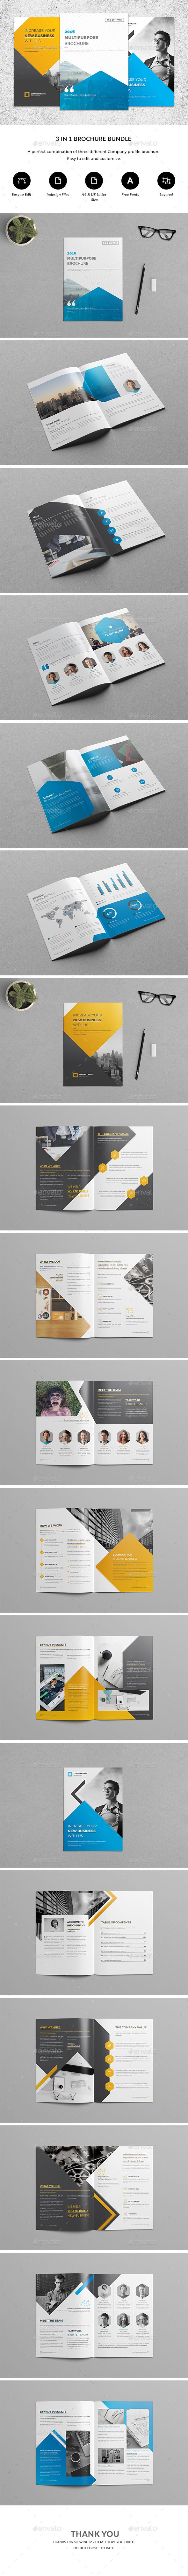 Company Profile Brochure Bundle  A perfect bundle of three different company profile brochure. Ideal for Company branding. Just replace your images and texts and they are ready to print. Everything is editable in inDesign. It's that easy.All texts are set with free fonts, and download links are provided. search tag: #Brochure #Bundle 3 in 1 - #Corporate #Brochures